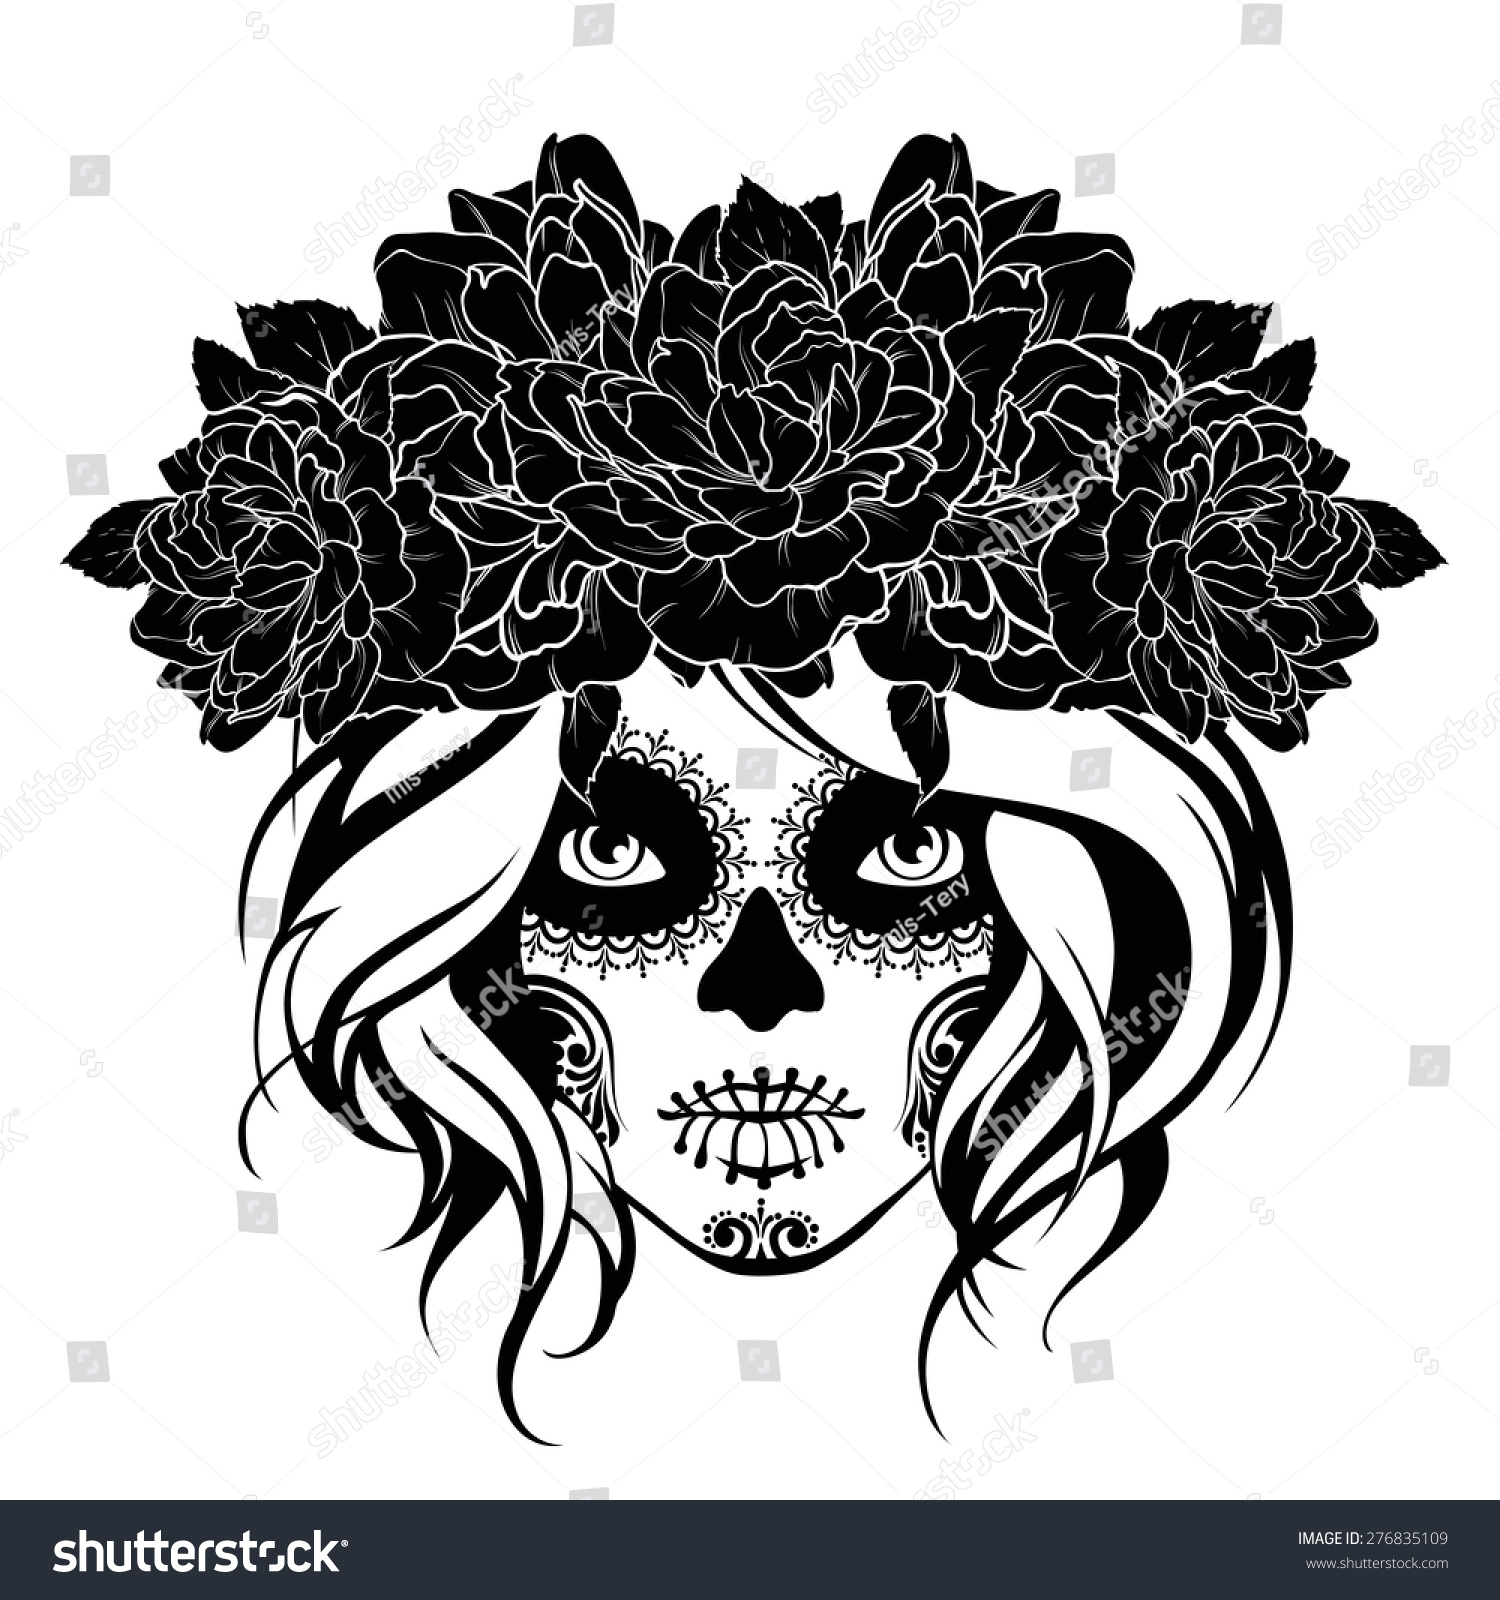 Black and white floral wreath stock vector image 65241515 - Skull Girl Flower Wreath Black White Stock Vector 1500x1600